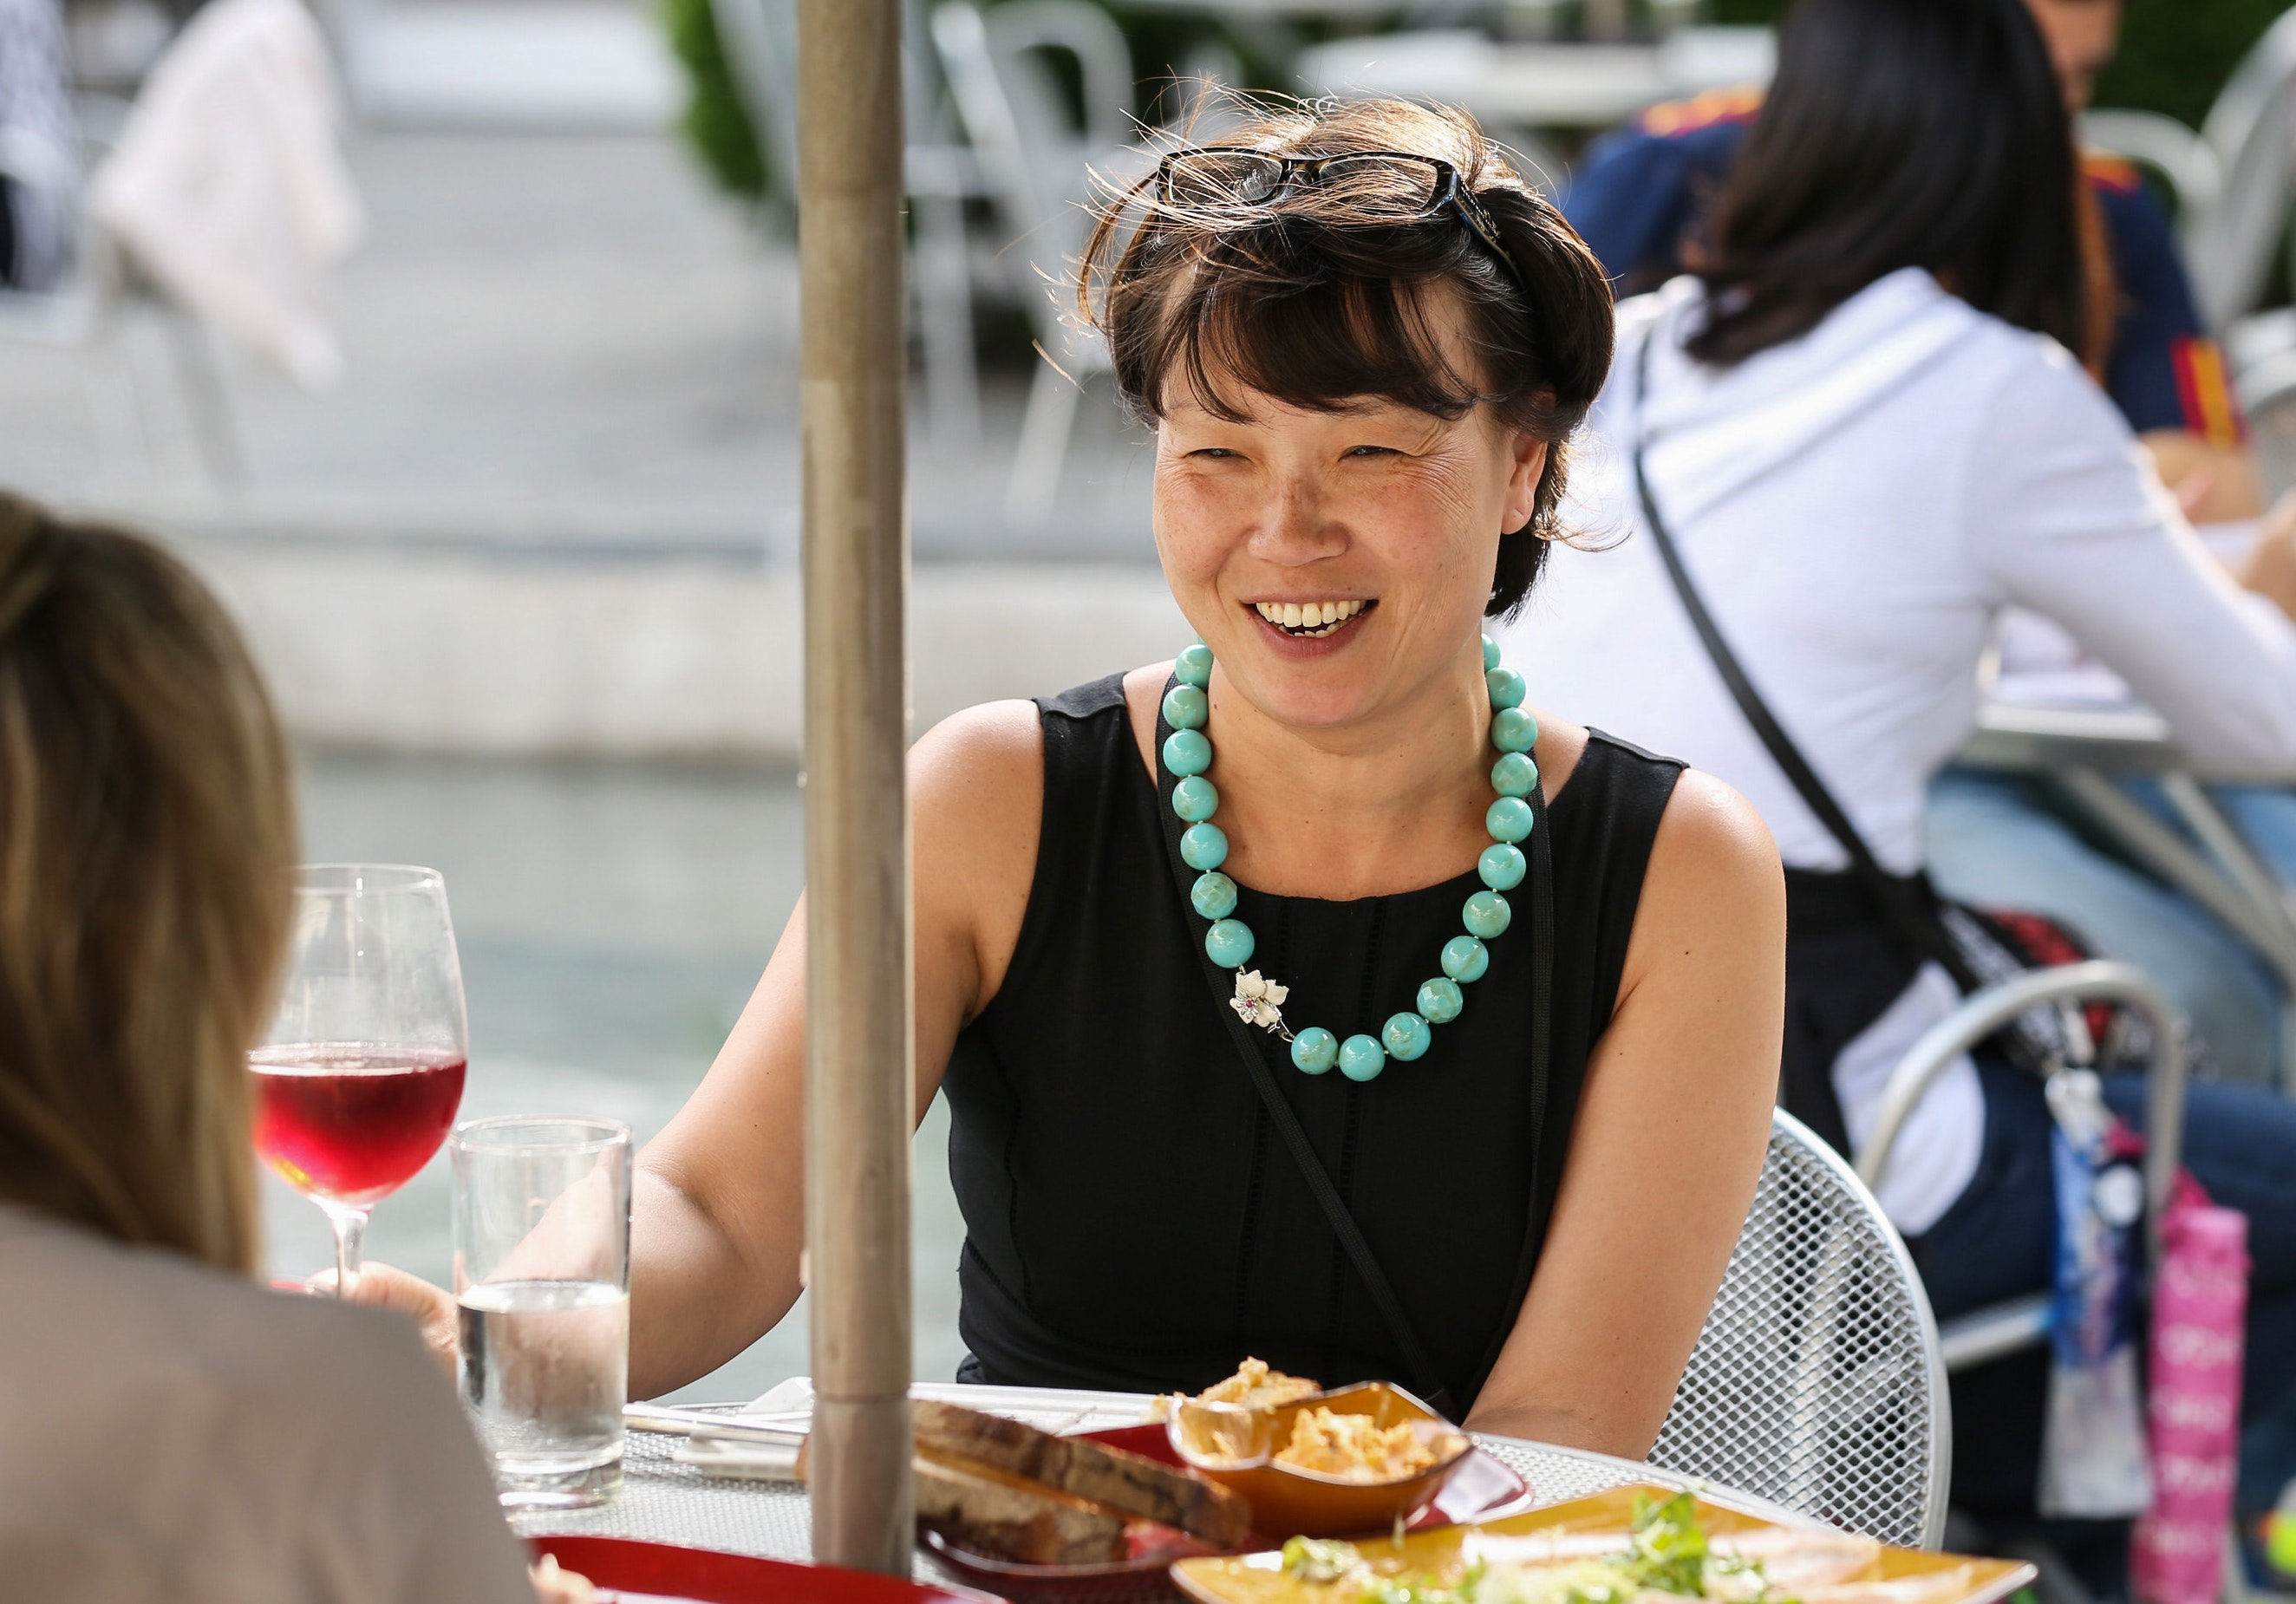 A woman in a black dress enjoys a glass of wine outside.